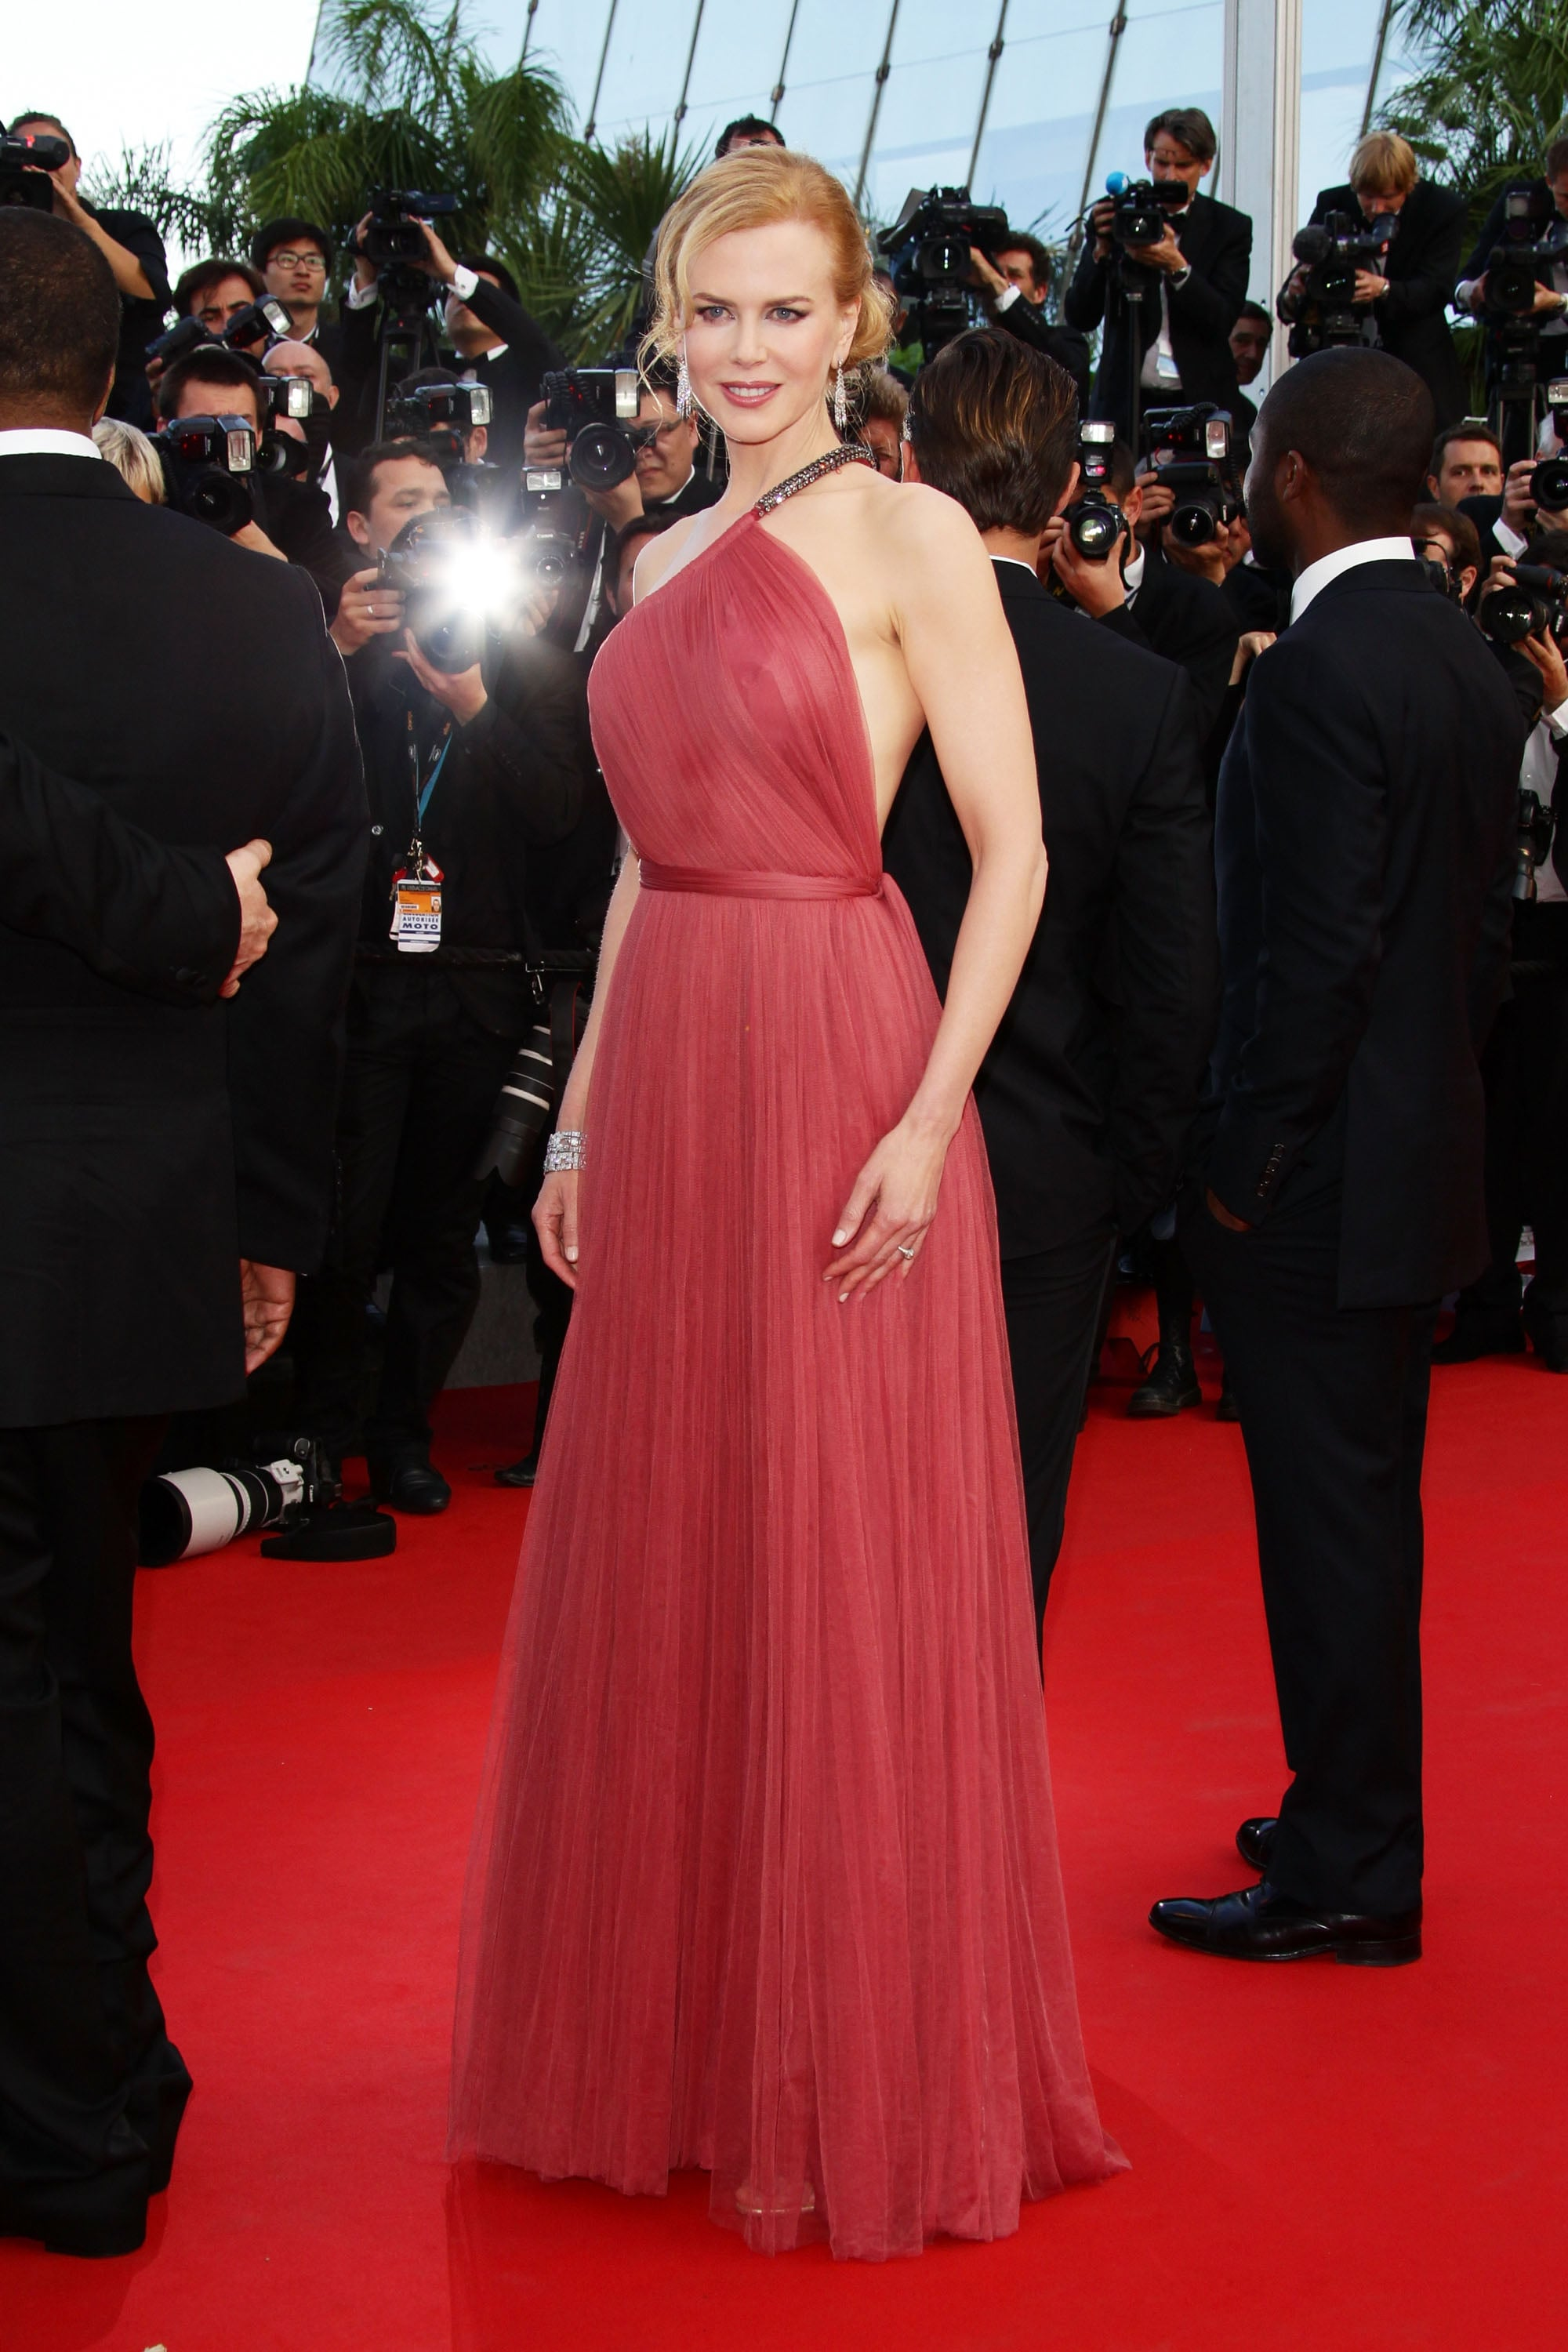 Nicole Kidman glowed in a cherry-red frock at the premiere of The Paperboy at the Cannes Film Festival in 2012.